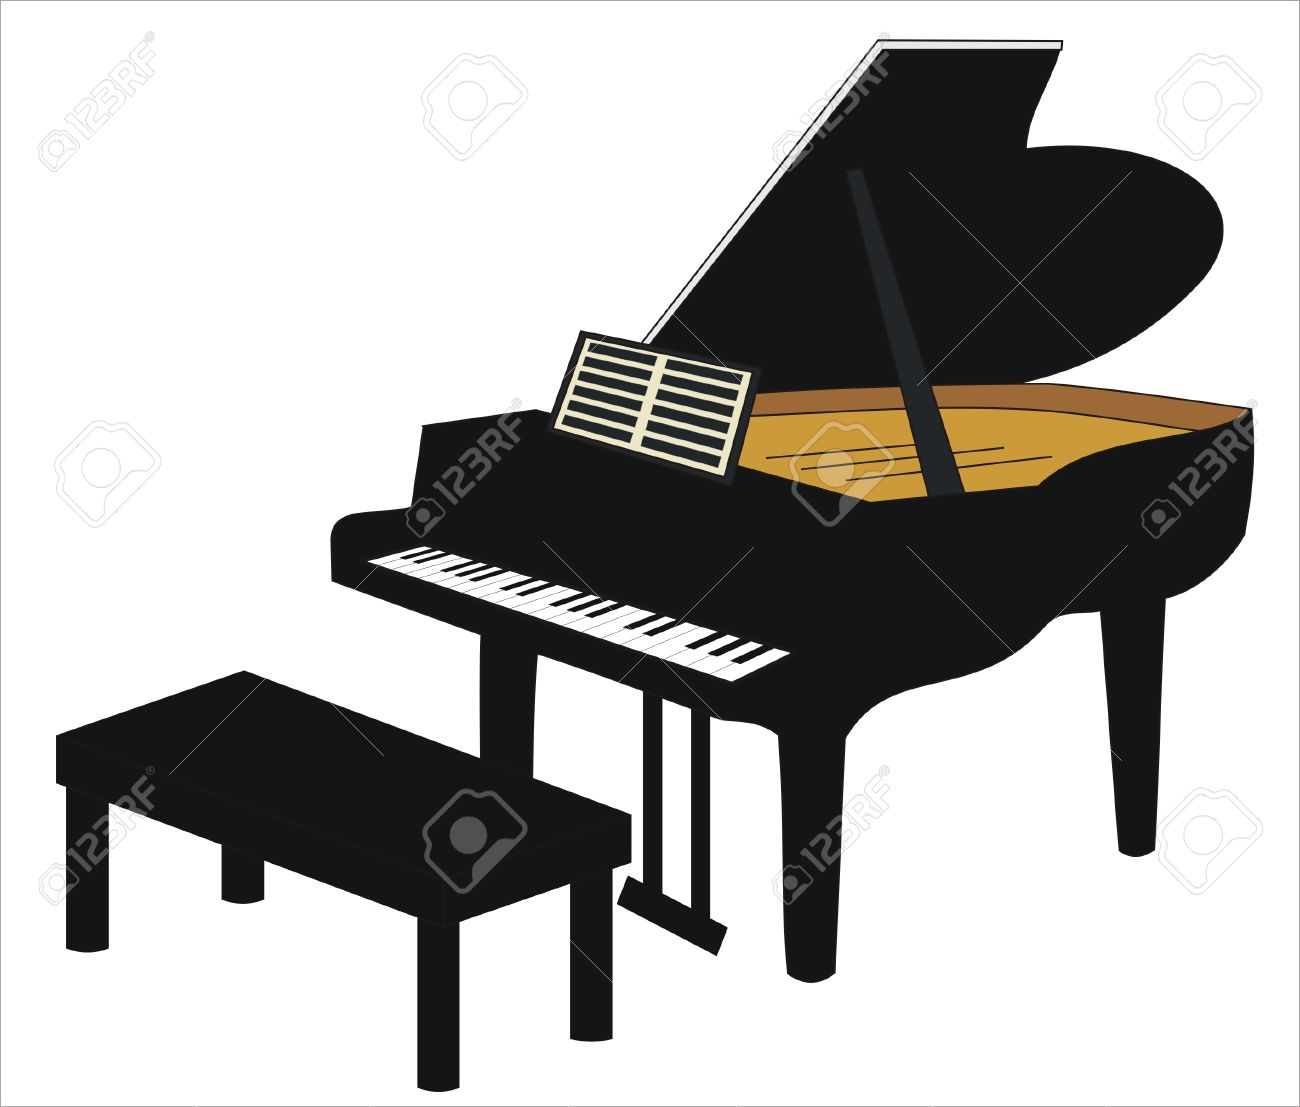 Drawing Of A Grand Piano With Seat Royalty Free Cliparts, Vectors ...